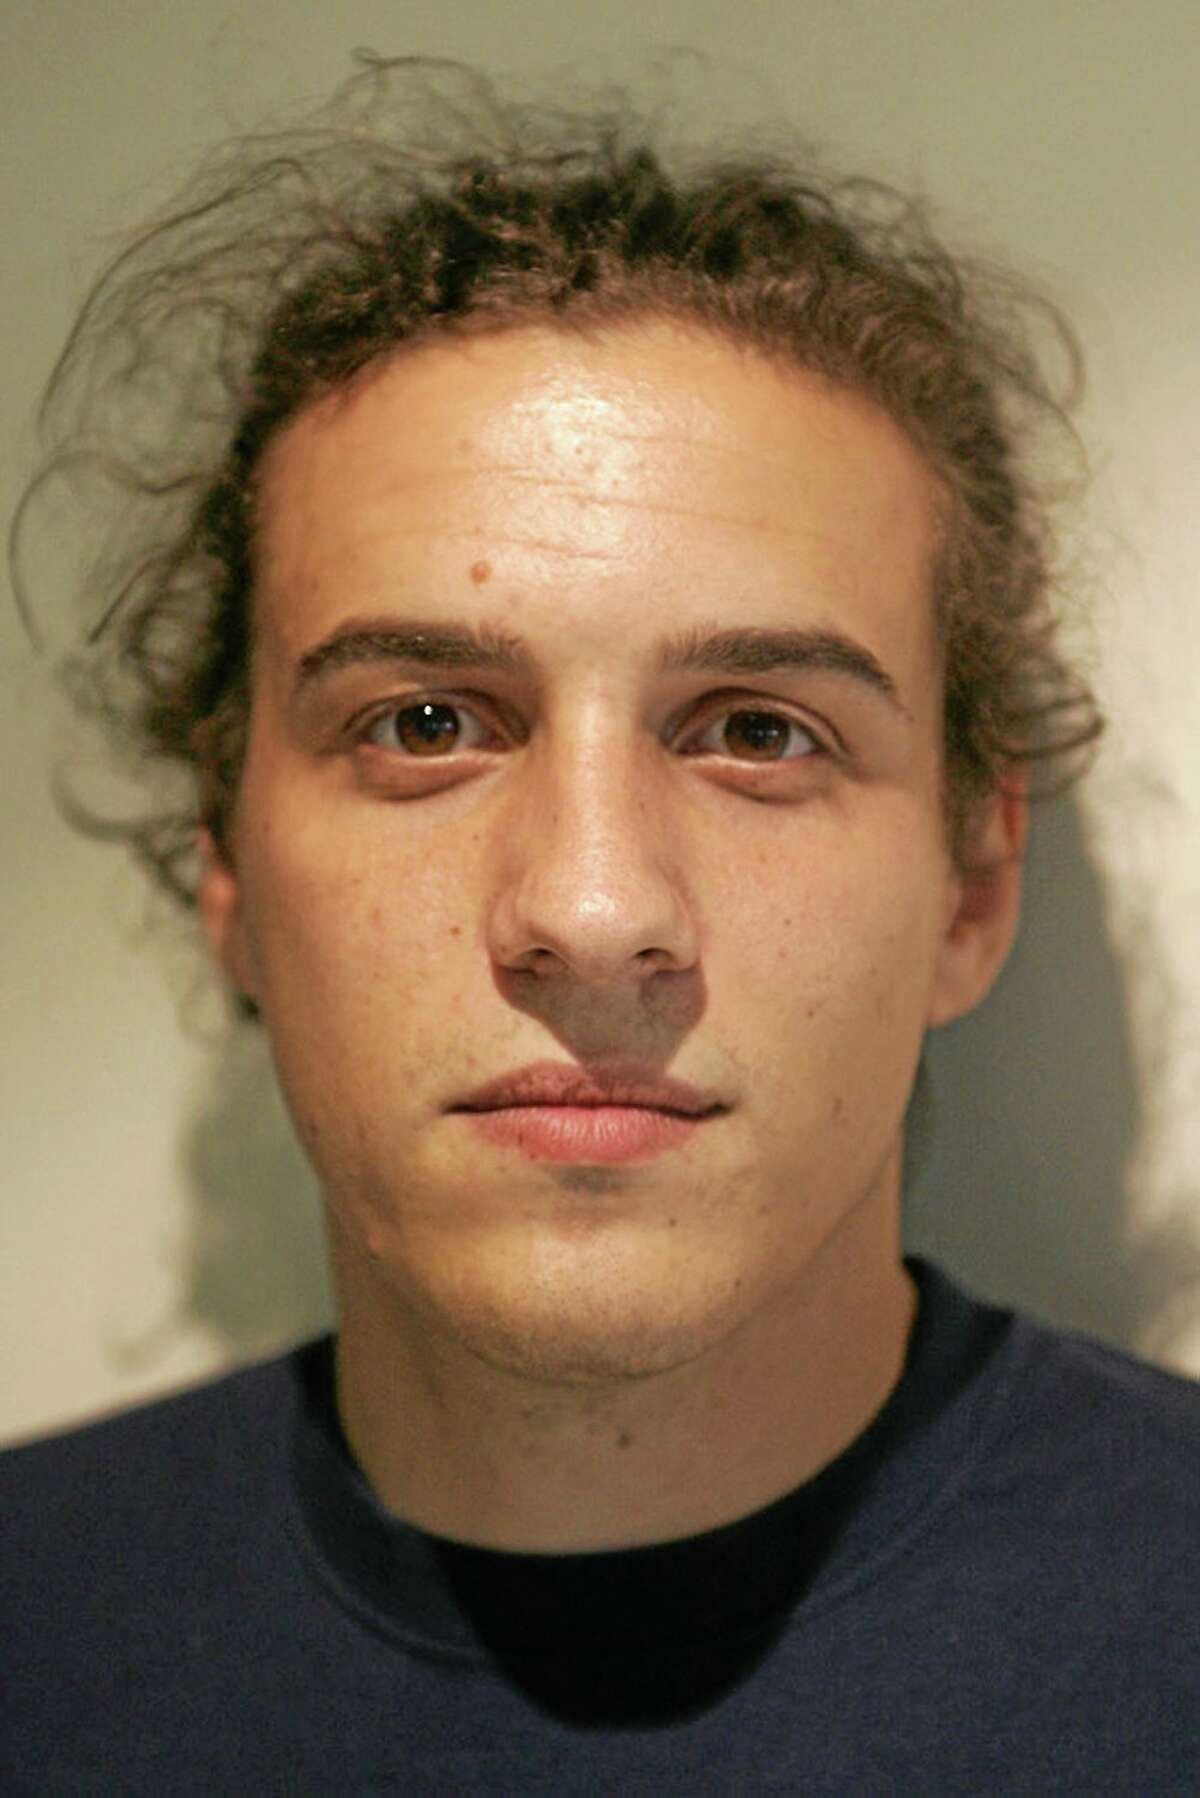 This undated photo shows Associated Press video journalist Simone Camilli. The 35-year-old Italian national has been killed in an ordnance explosion in the Gaza Strip, together with a Palestinian translator and three members of the Gaza police. (AP Photo)